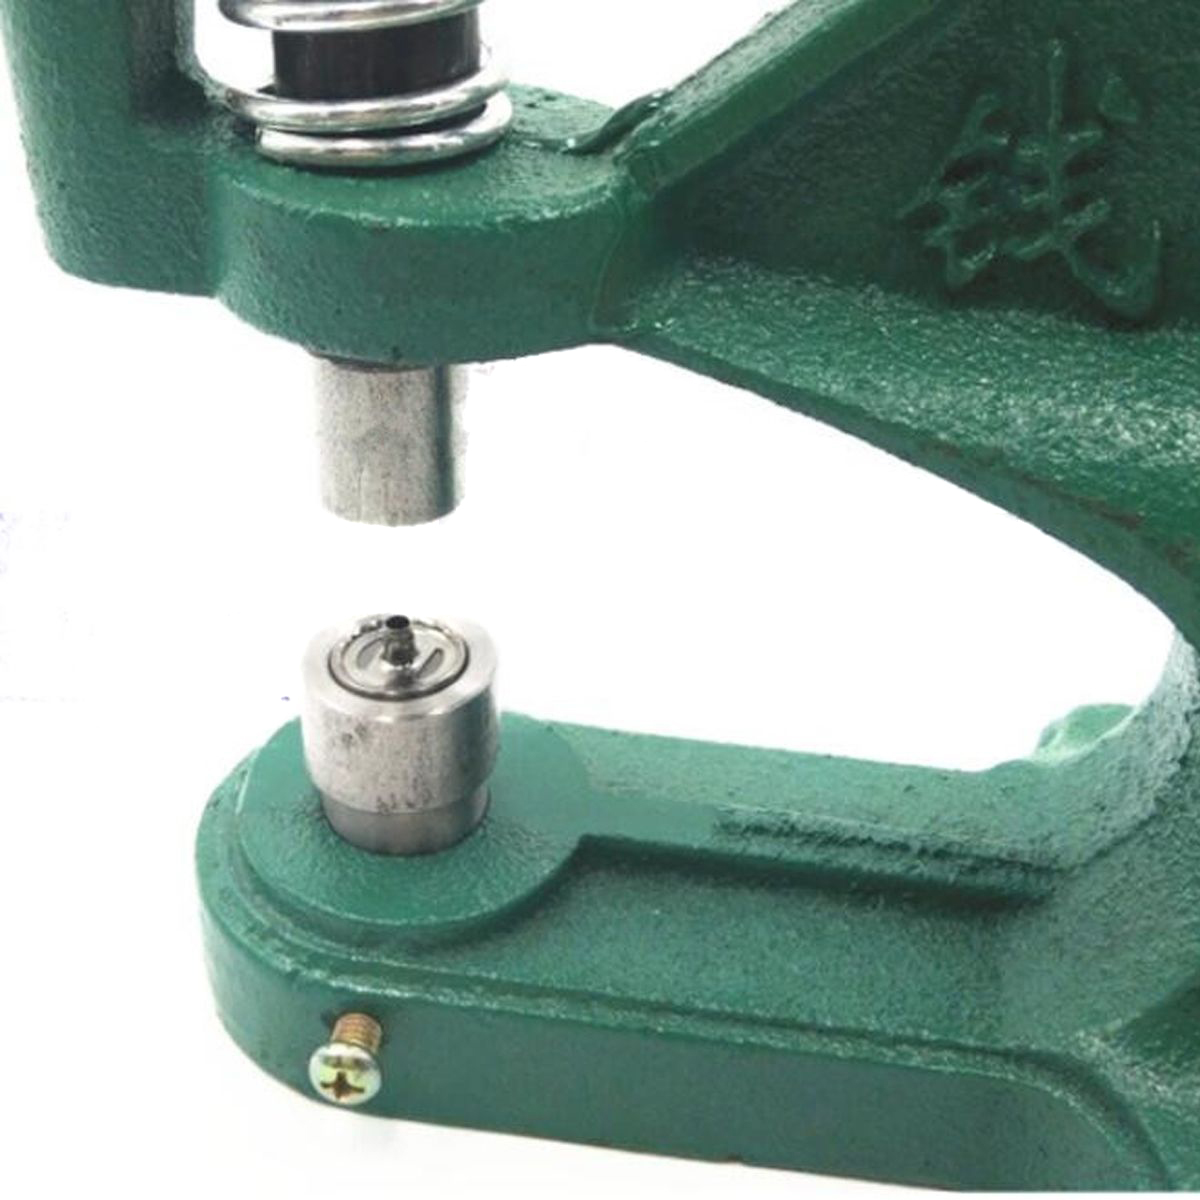 New Manual Claw Clasp Snap Fastener Dies Hand Pressure Pressing Clamp Machine Tool